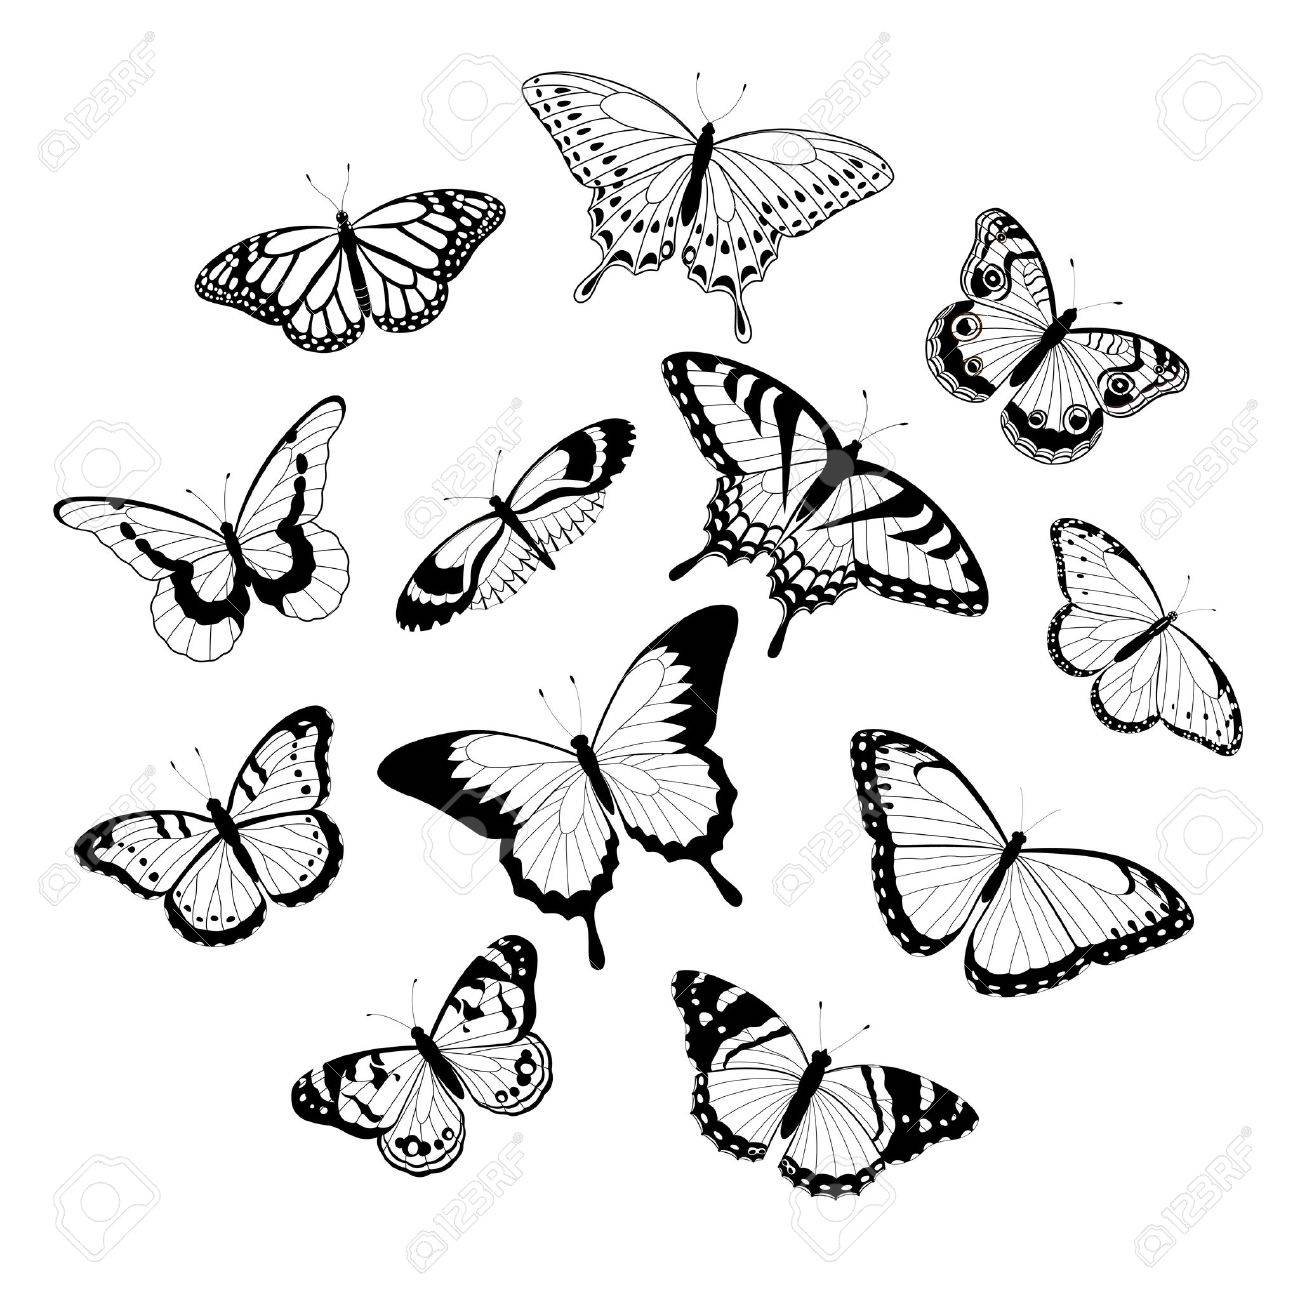 collection of black and white butterflies isolated on white